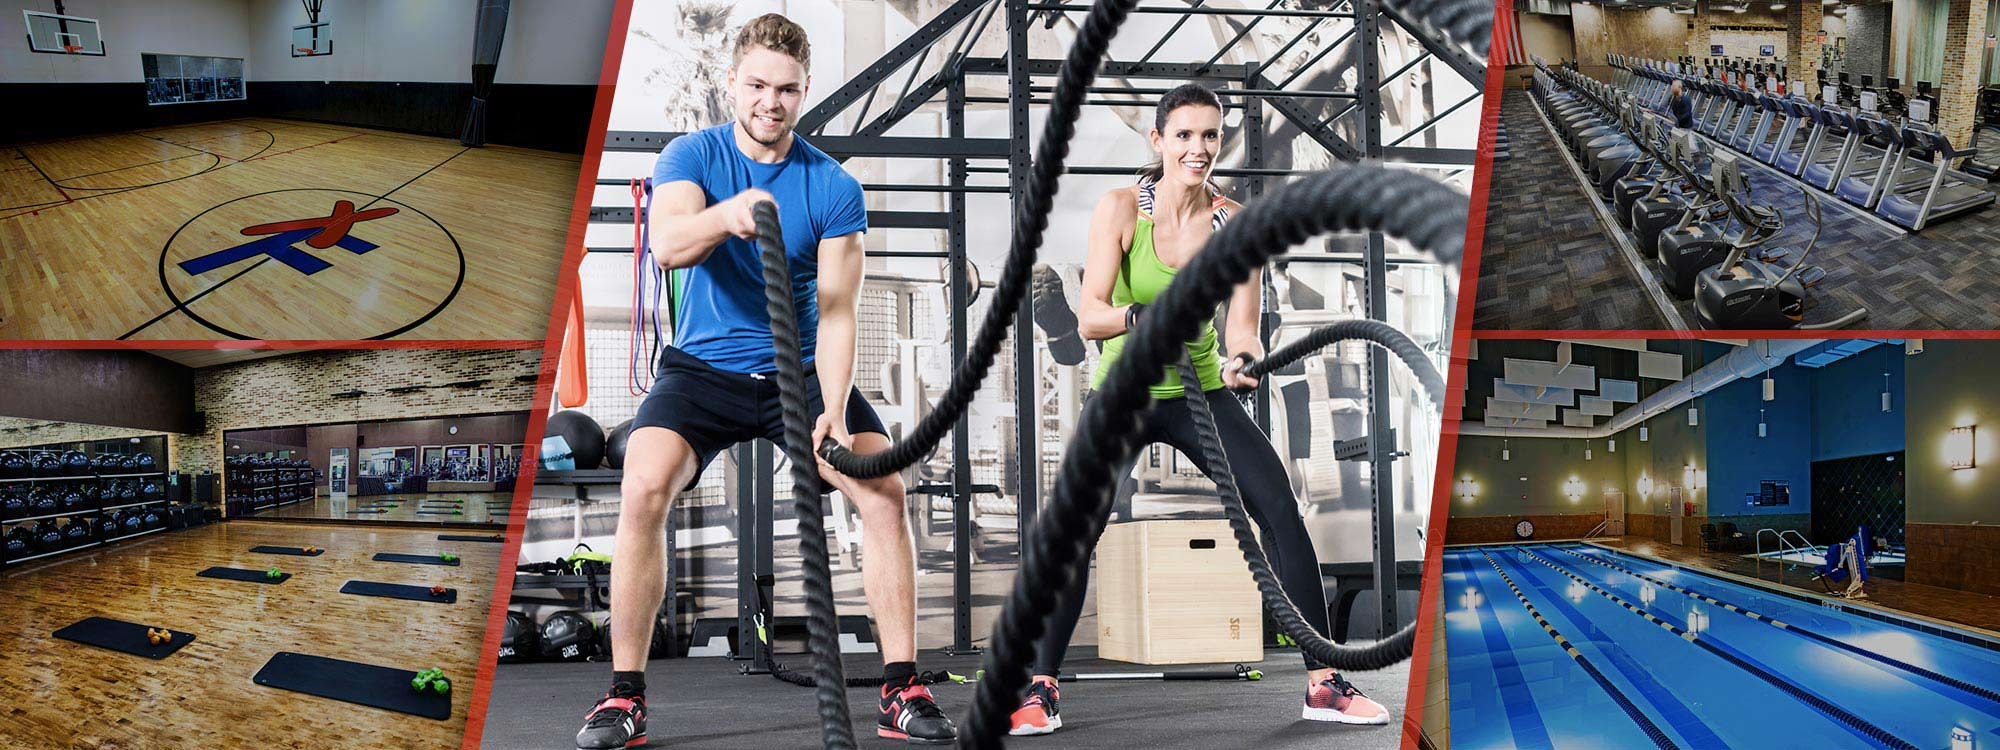 xsport club photos with couple doing battle rope workout